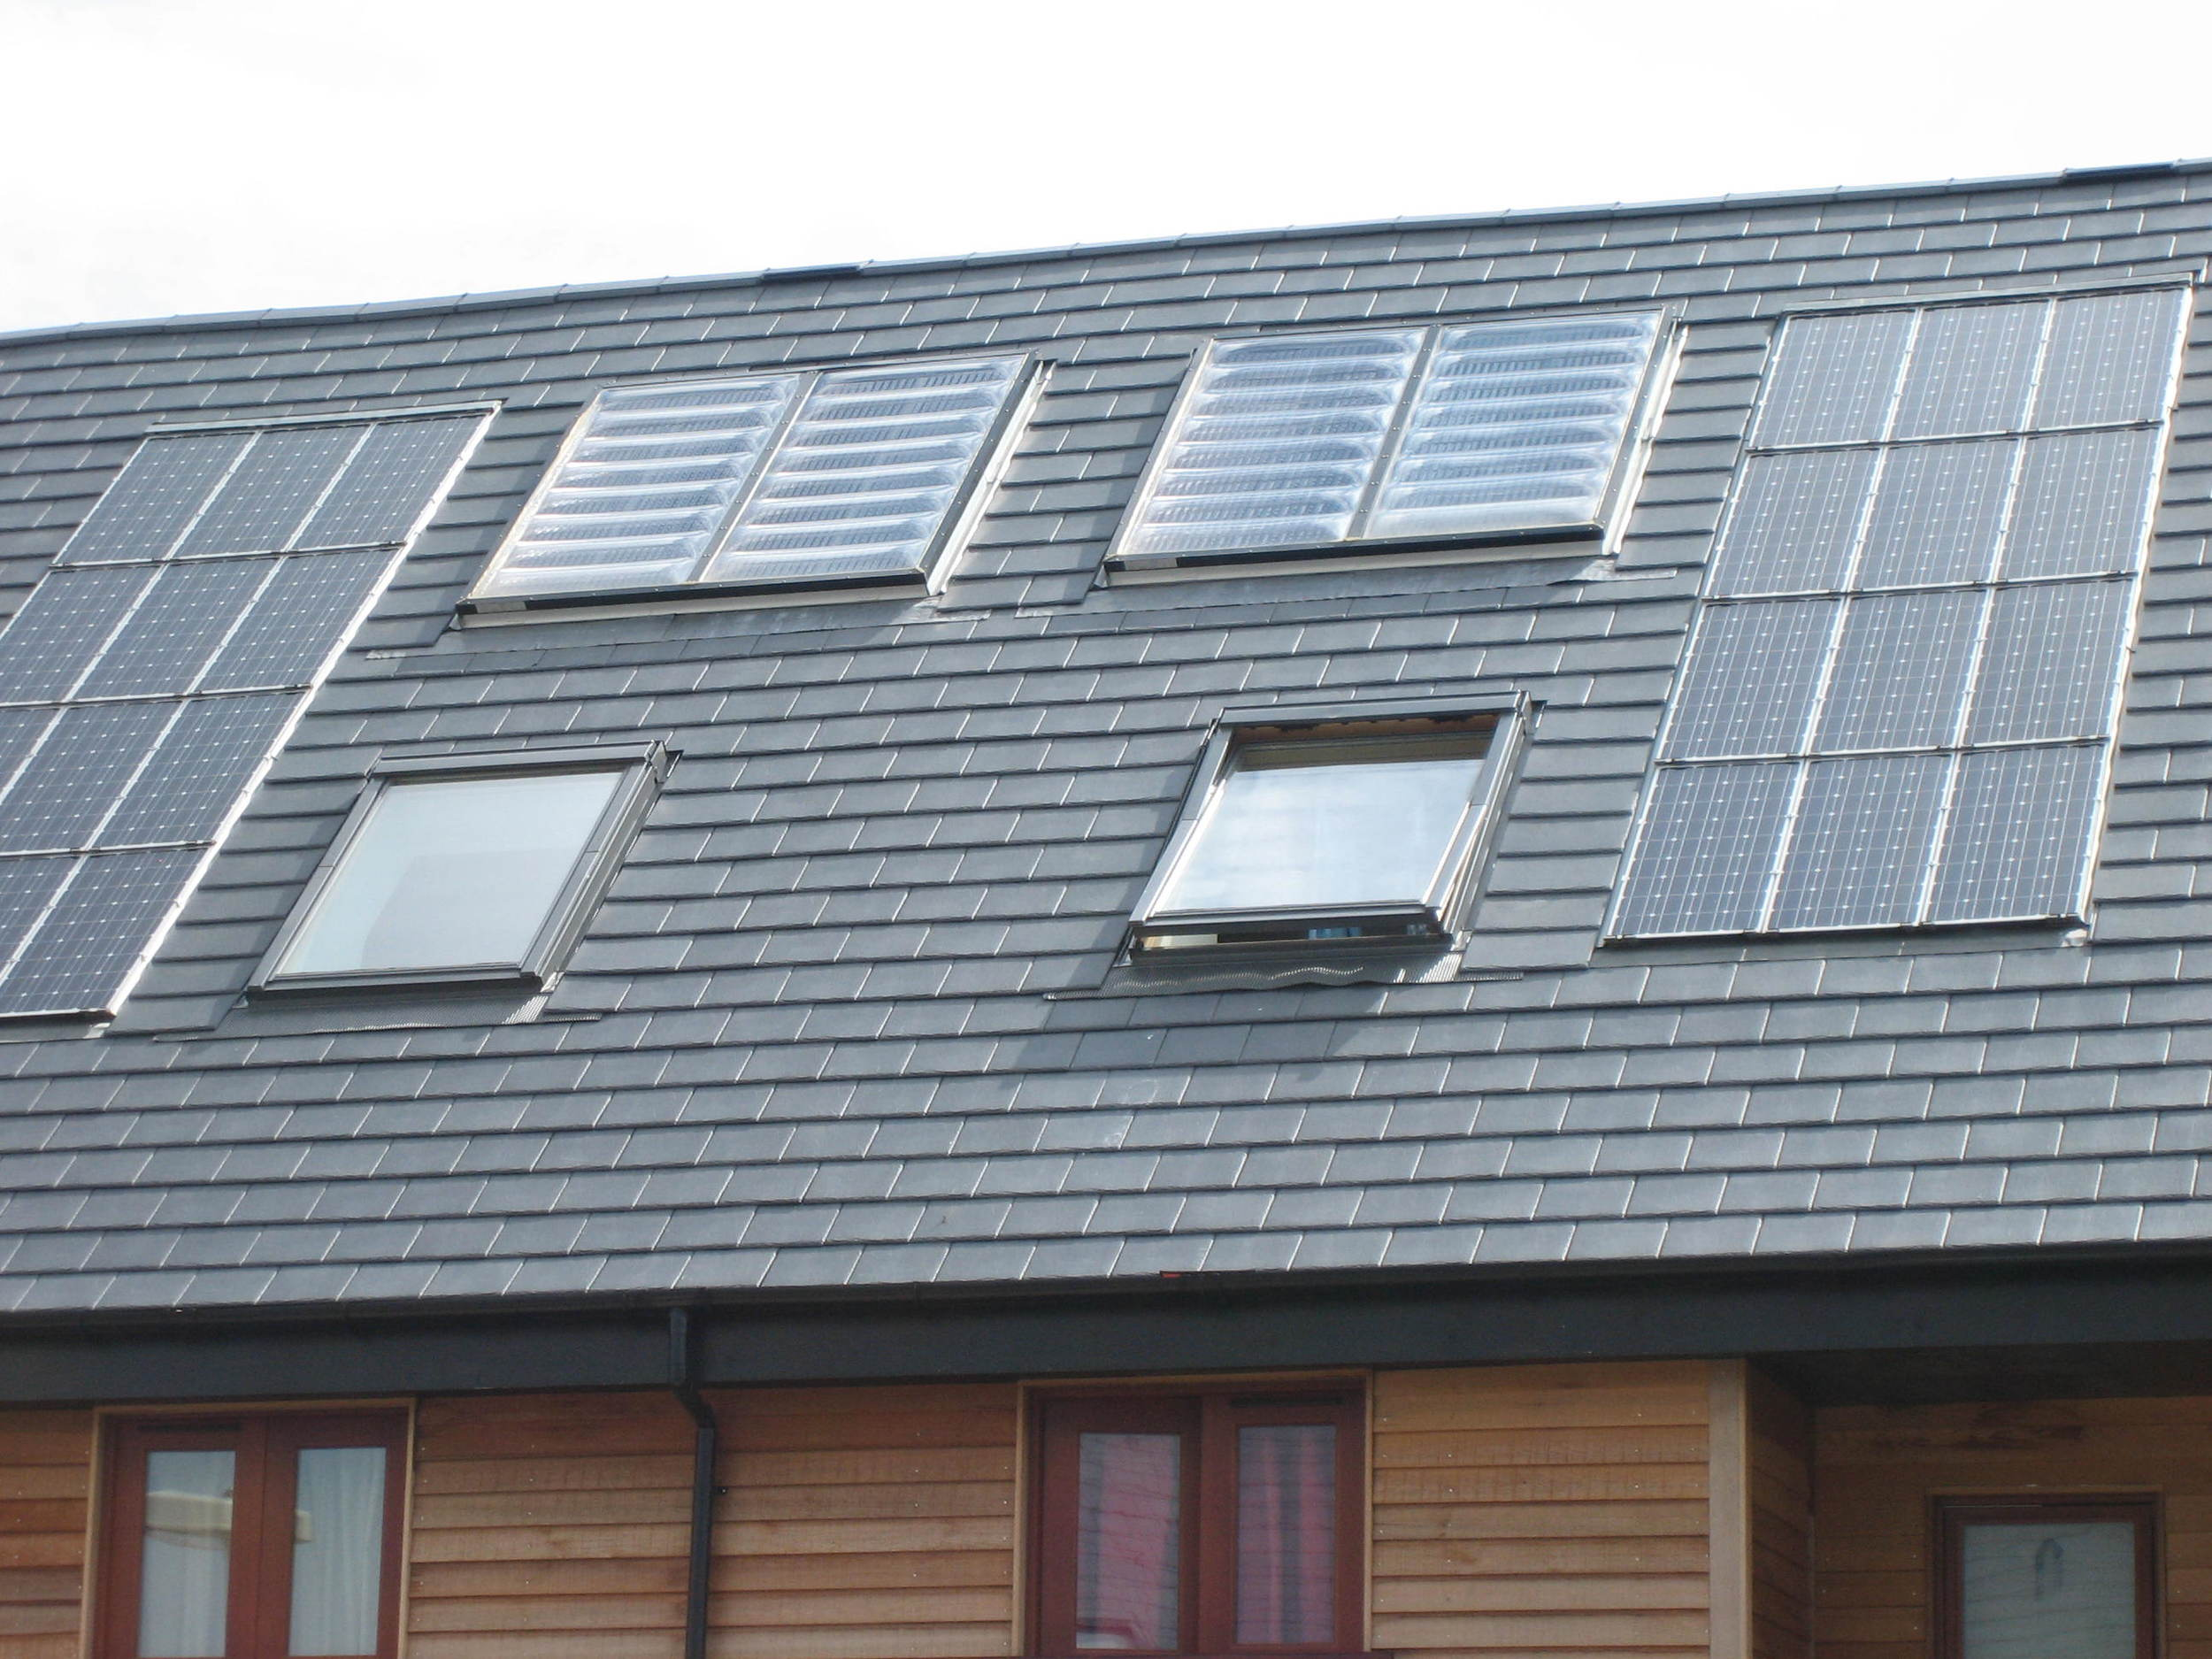 Solar water heating (flat plate collectors) and PV modules - Cambourne.JPG